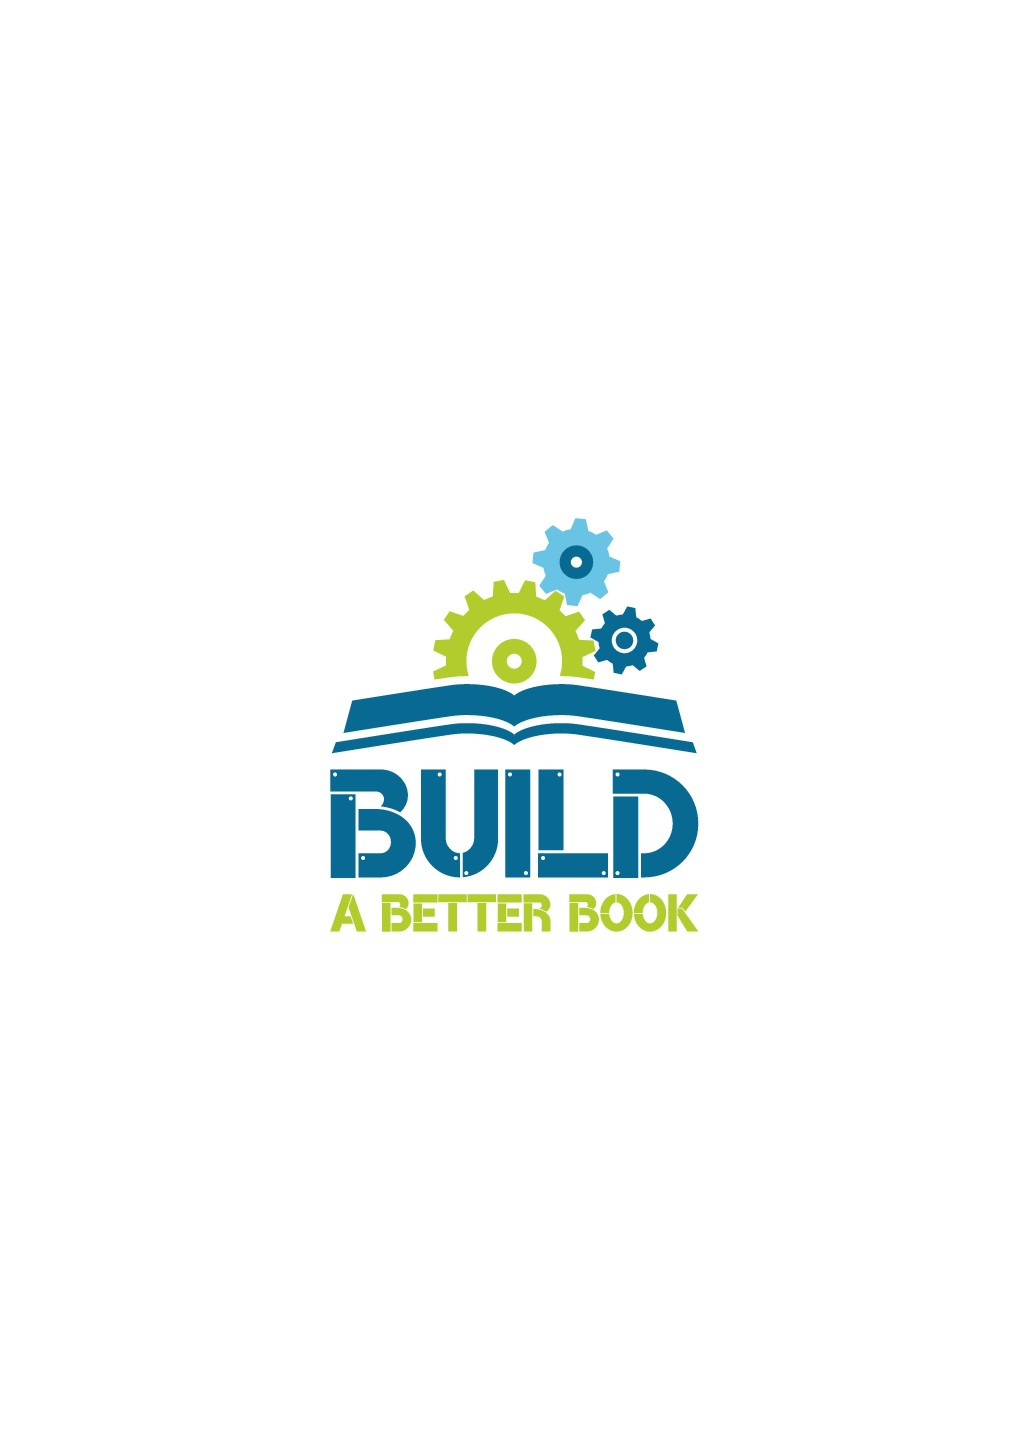 Design an engaging logo for the Build a Better Book project